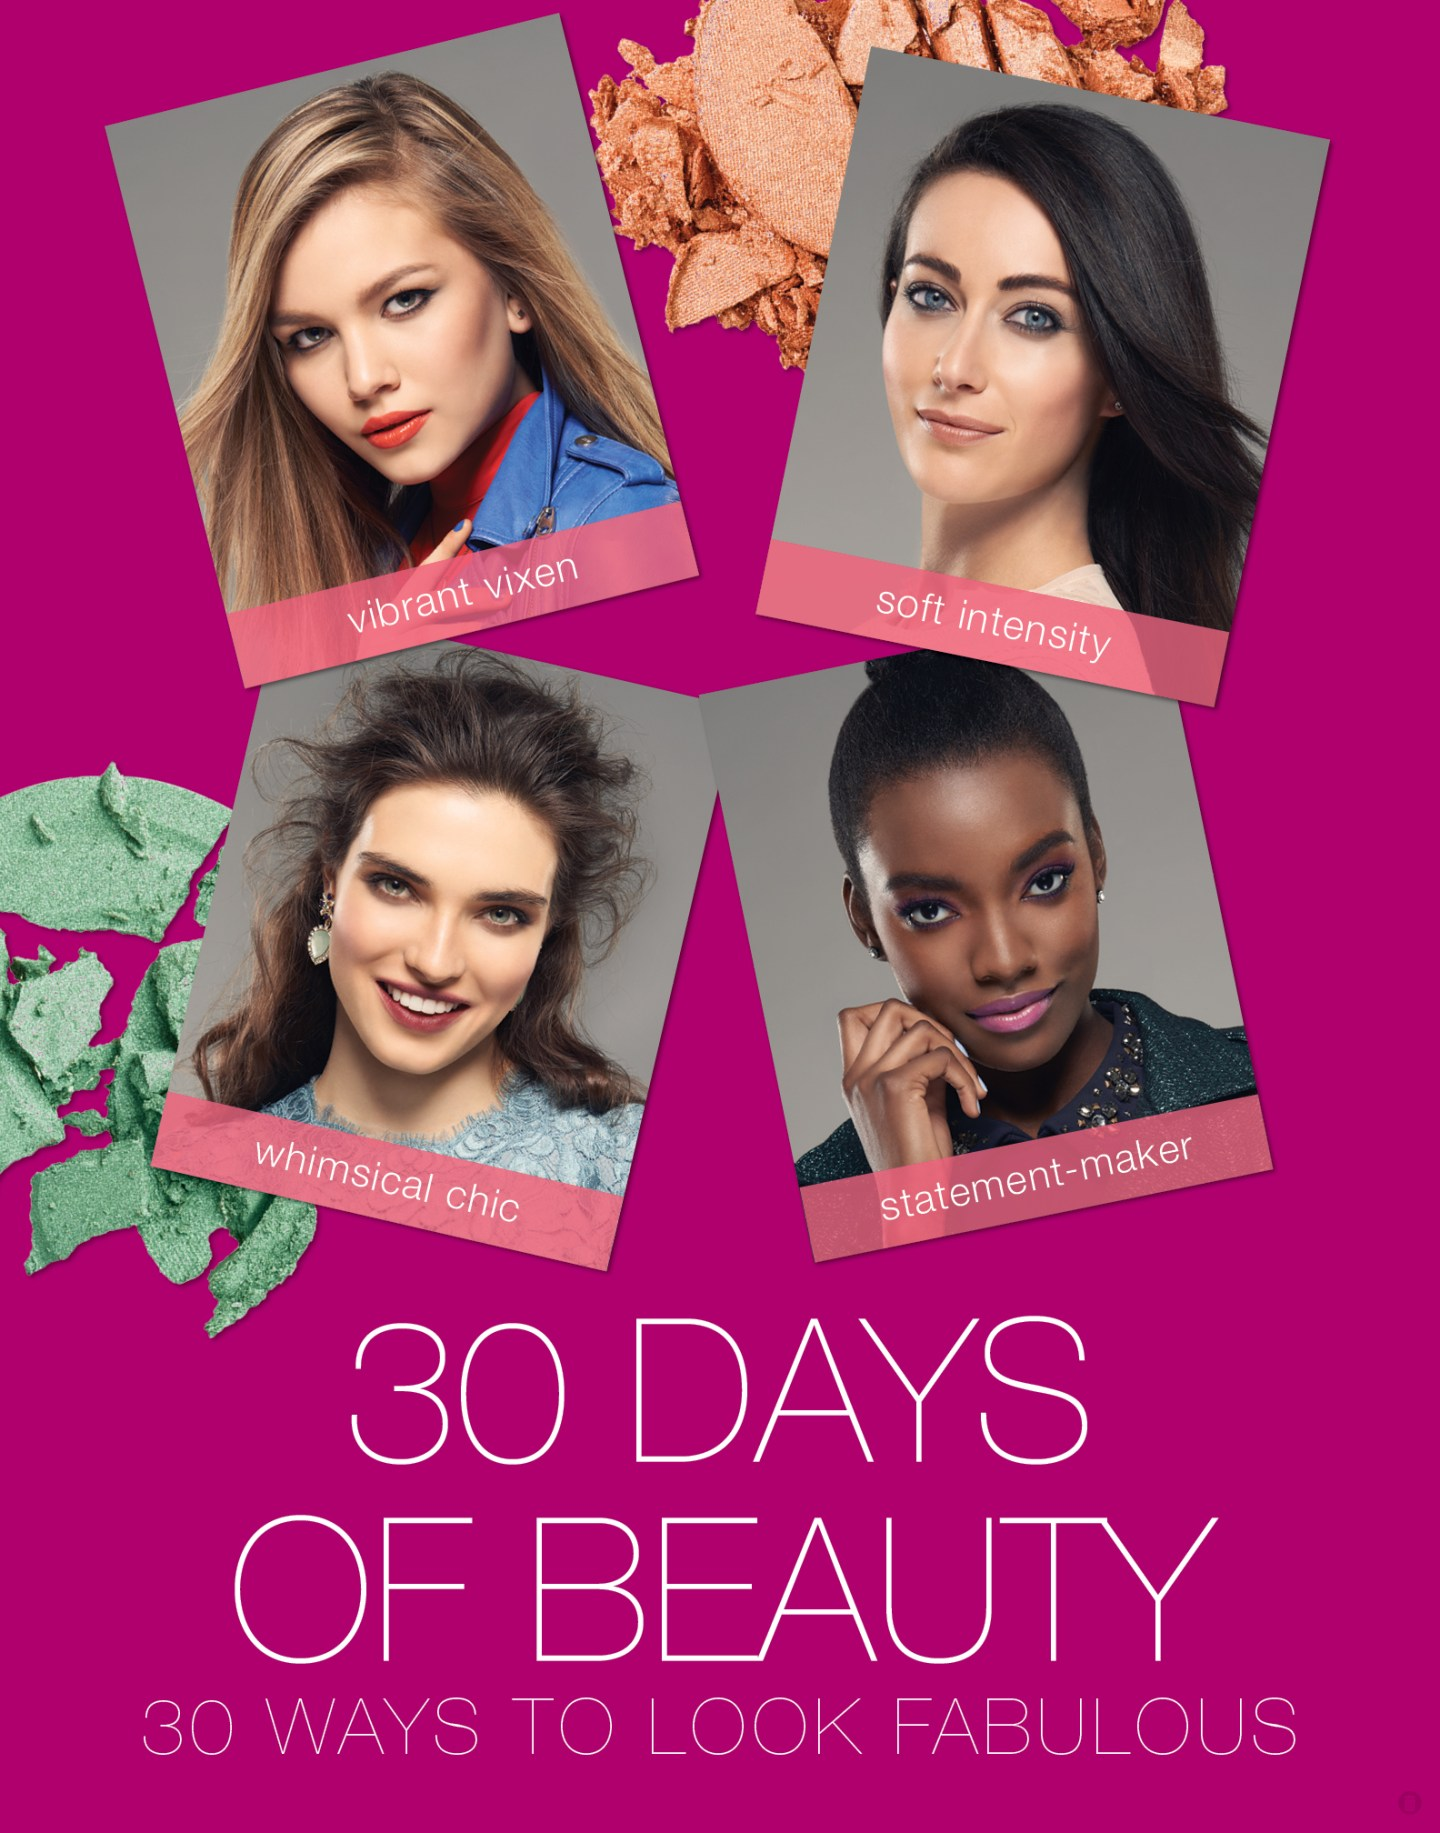 I'm Ready For #30DaysOfBeauty, Are You?